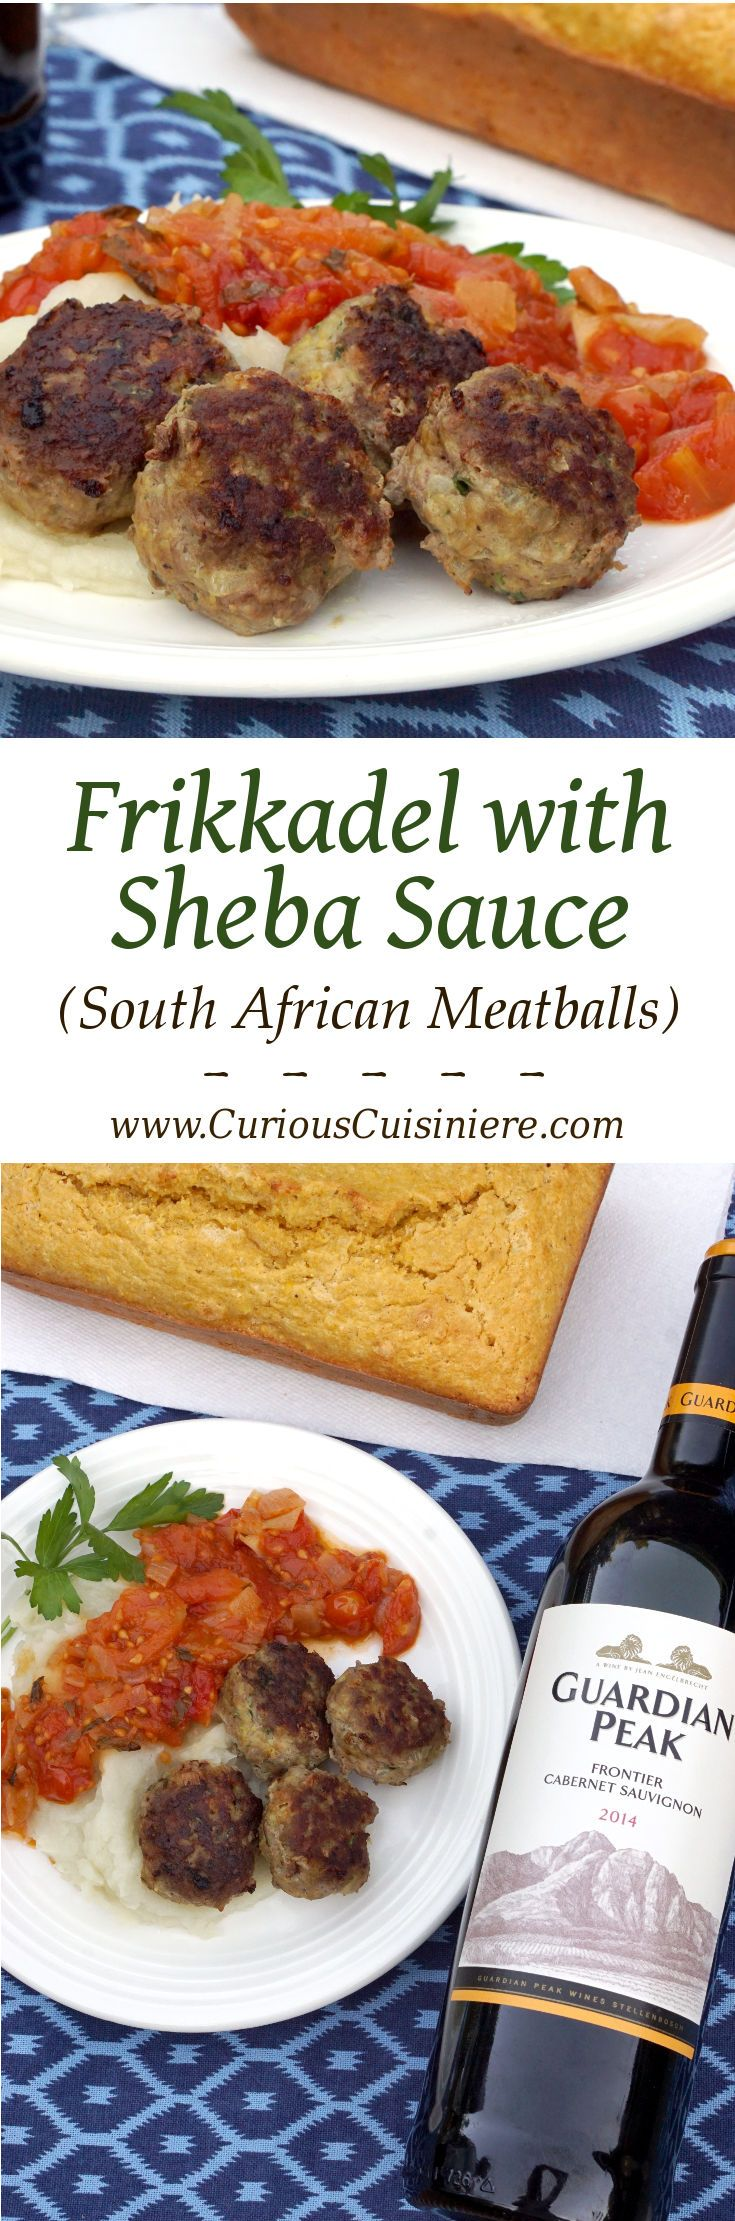 Best 25 african food recipes ideas on pinterest african recipes best 25 african food recipes ideas on pinterest african recipes africa recipes and chicken african recipe forumfinder Choice Image